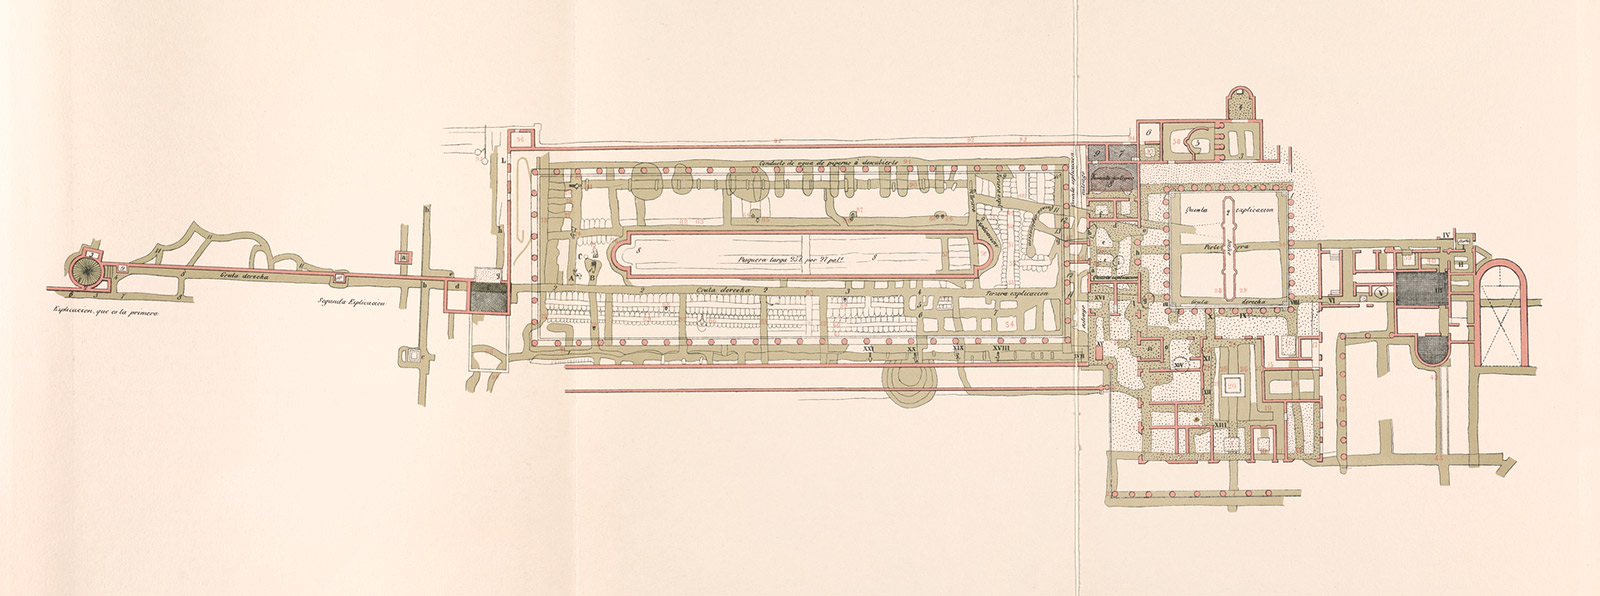 A sepia-toned, detailed architectural plan of a Roman villa and its gardens